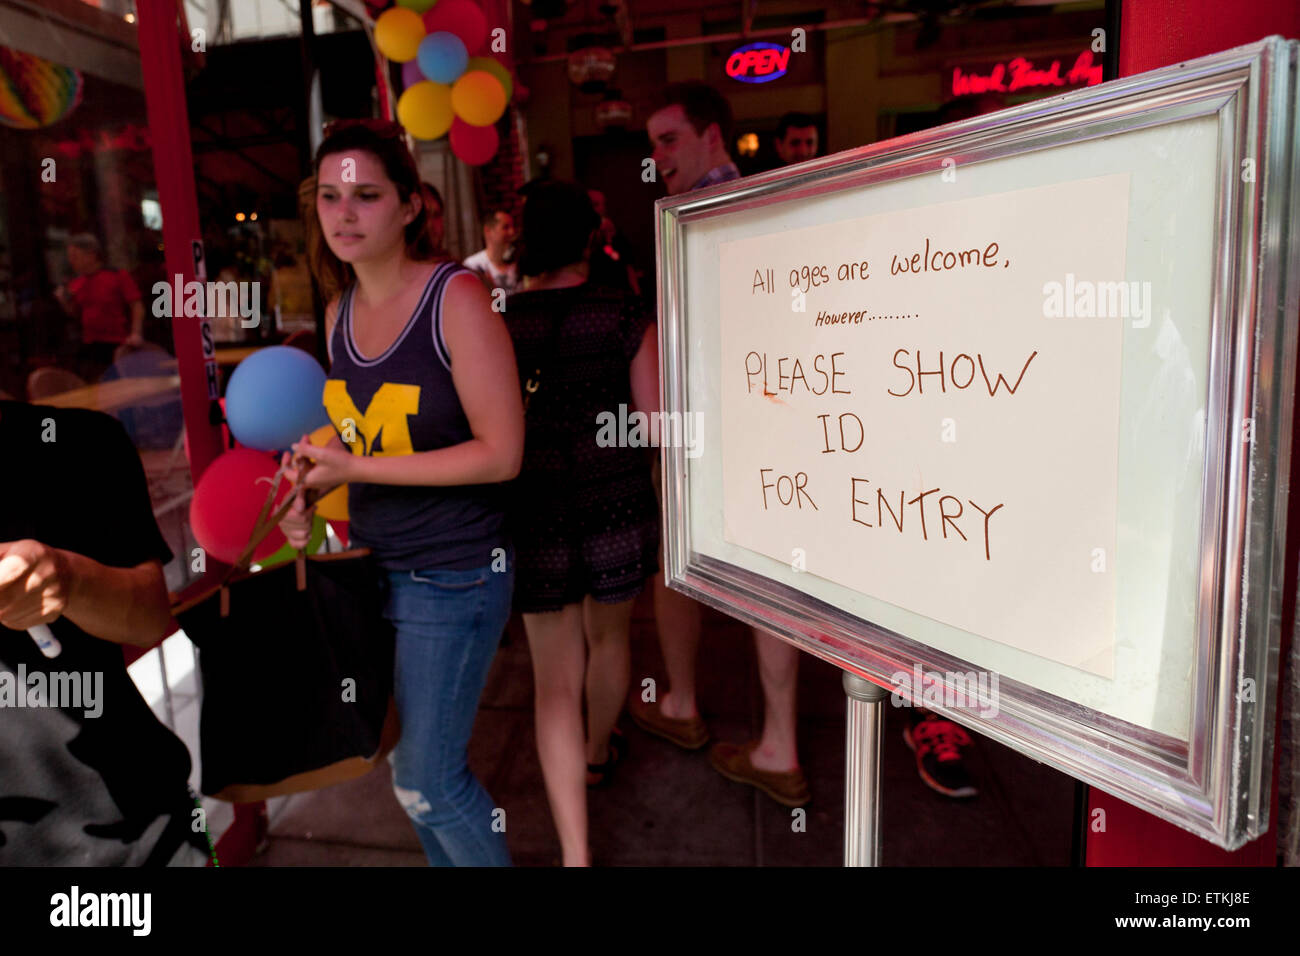 Show ID sign at entrance of bar - USA - Stock Image